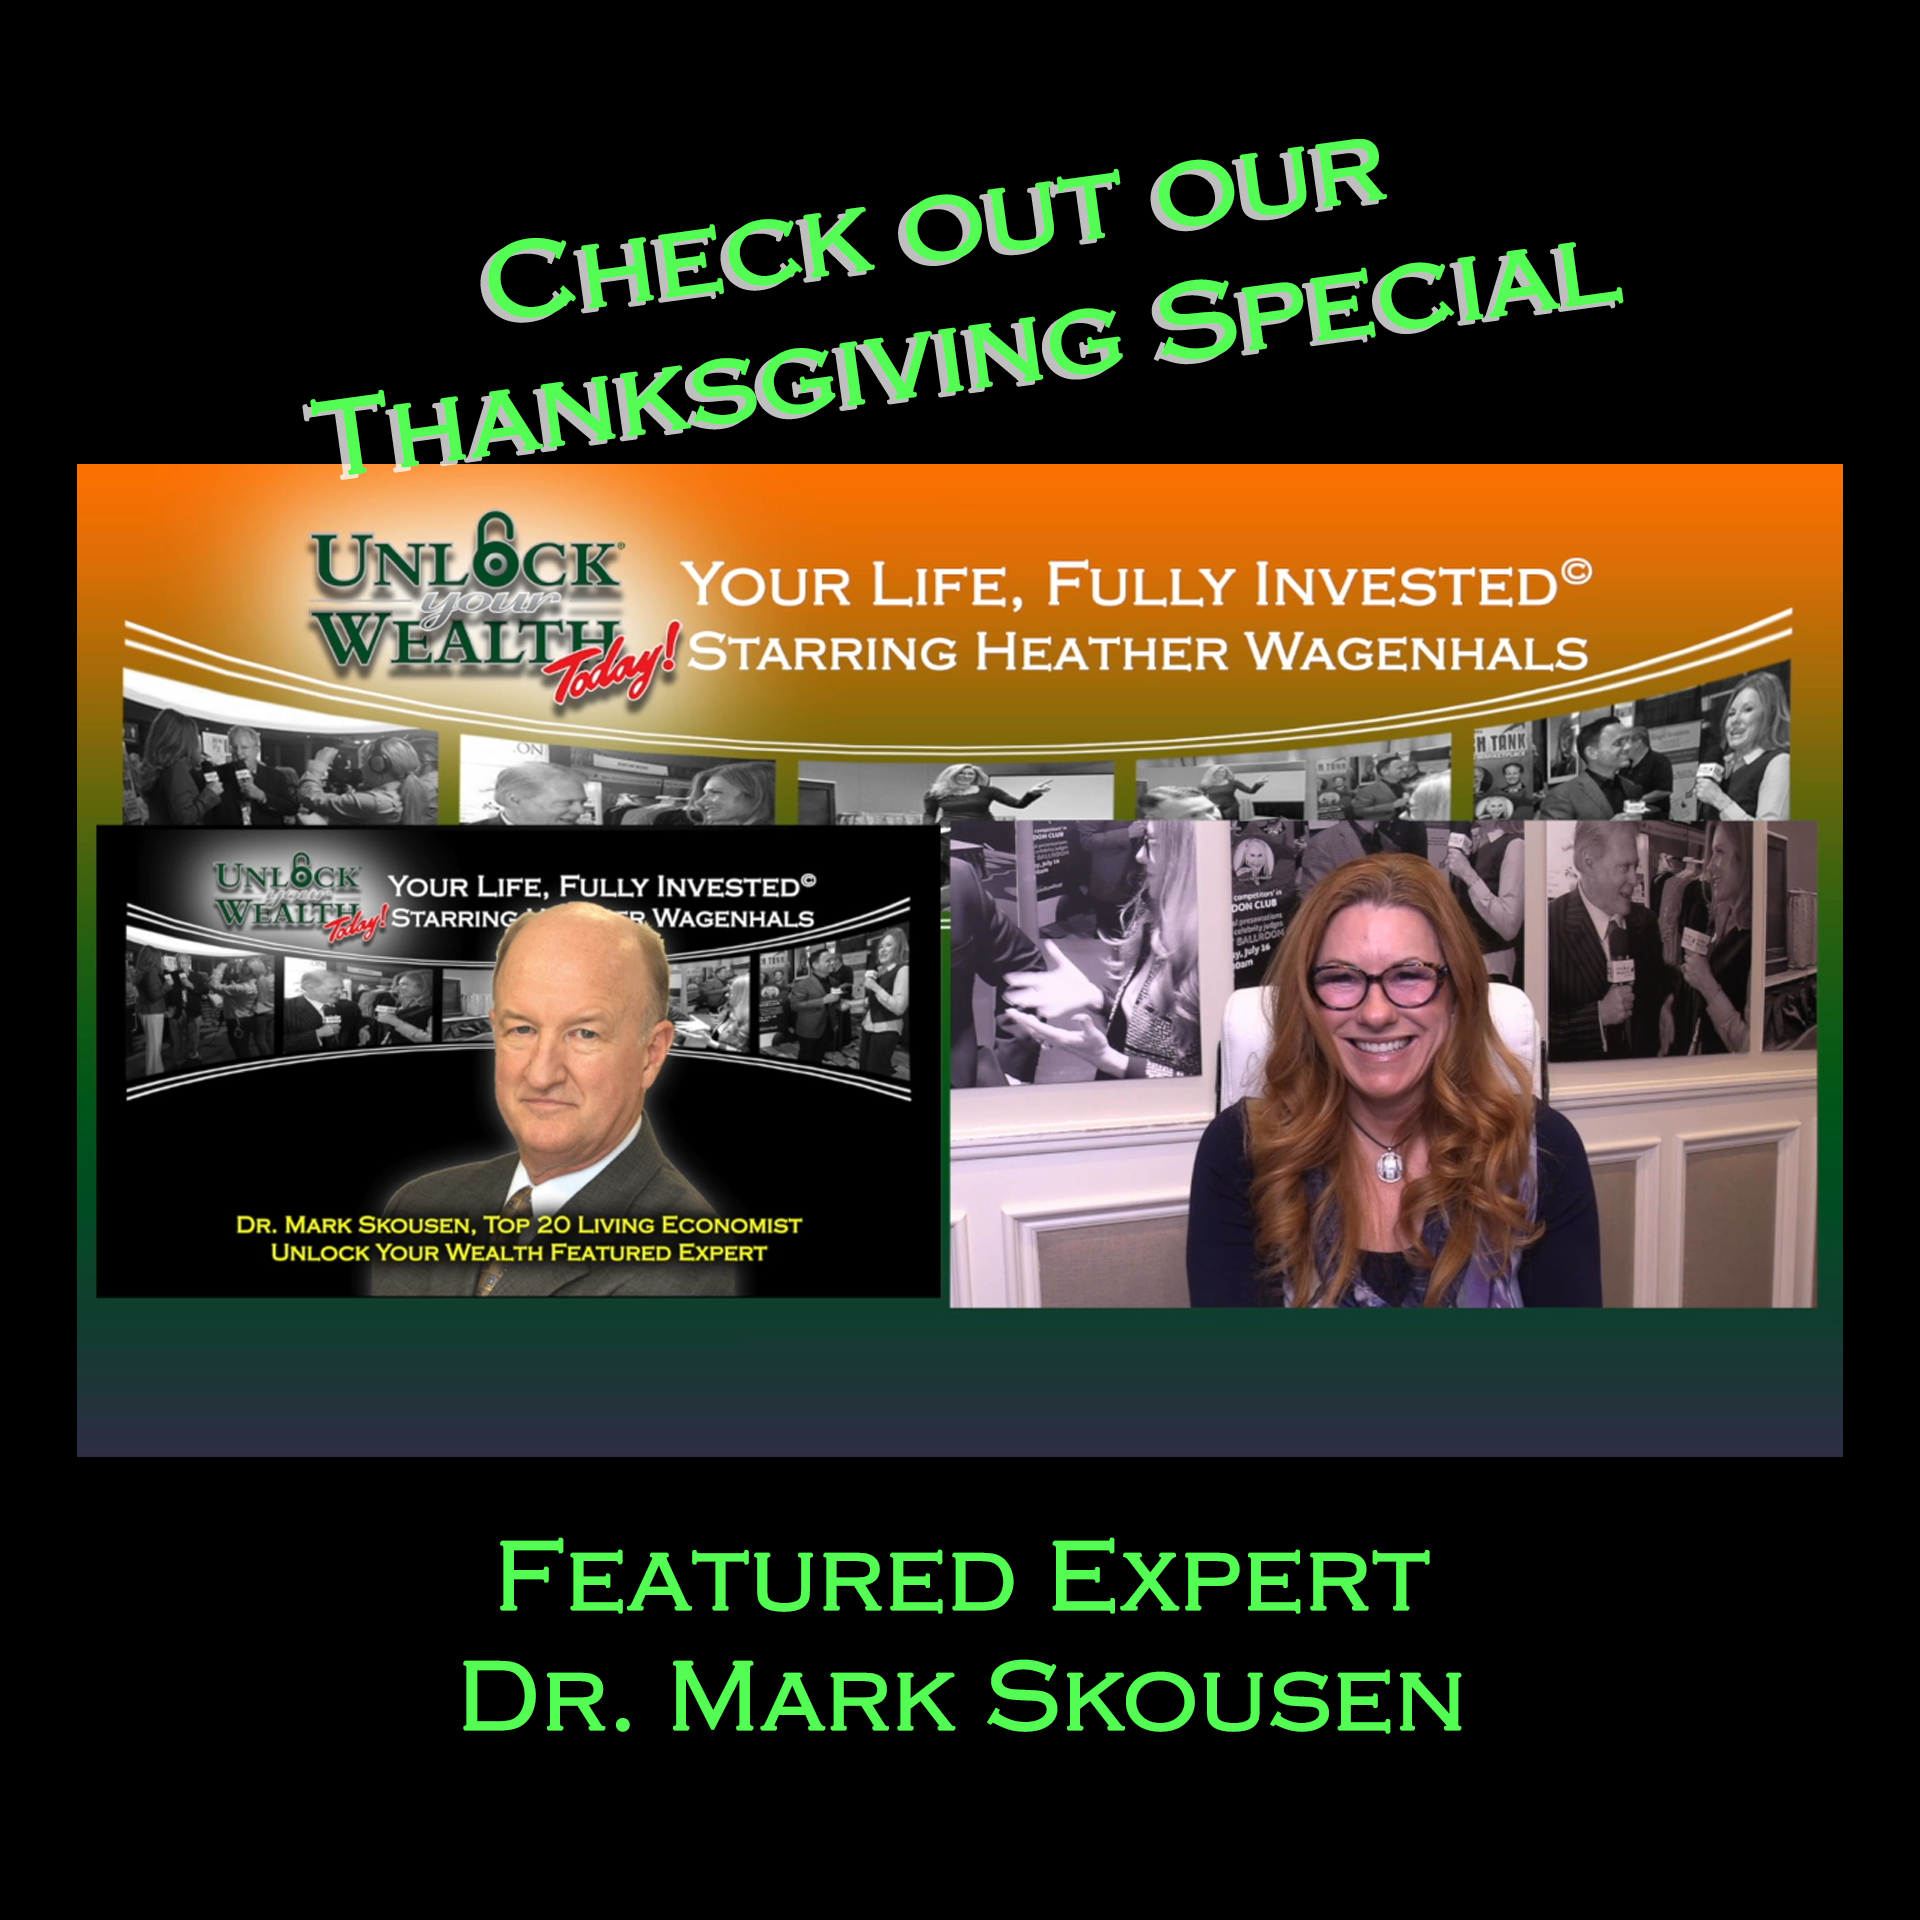 Artwork for Thanksgiving, My Other Favorite Holiday, and one of the Top 20 Living Economists Dr. Mark Skousen